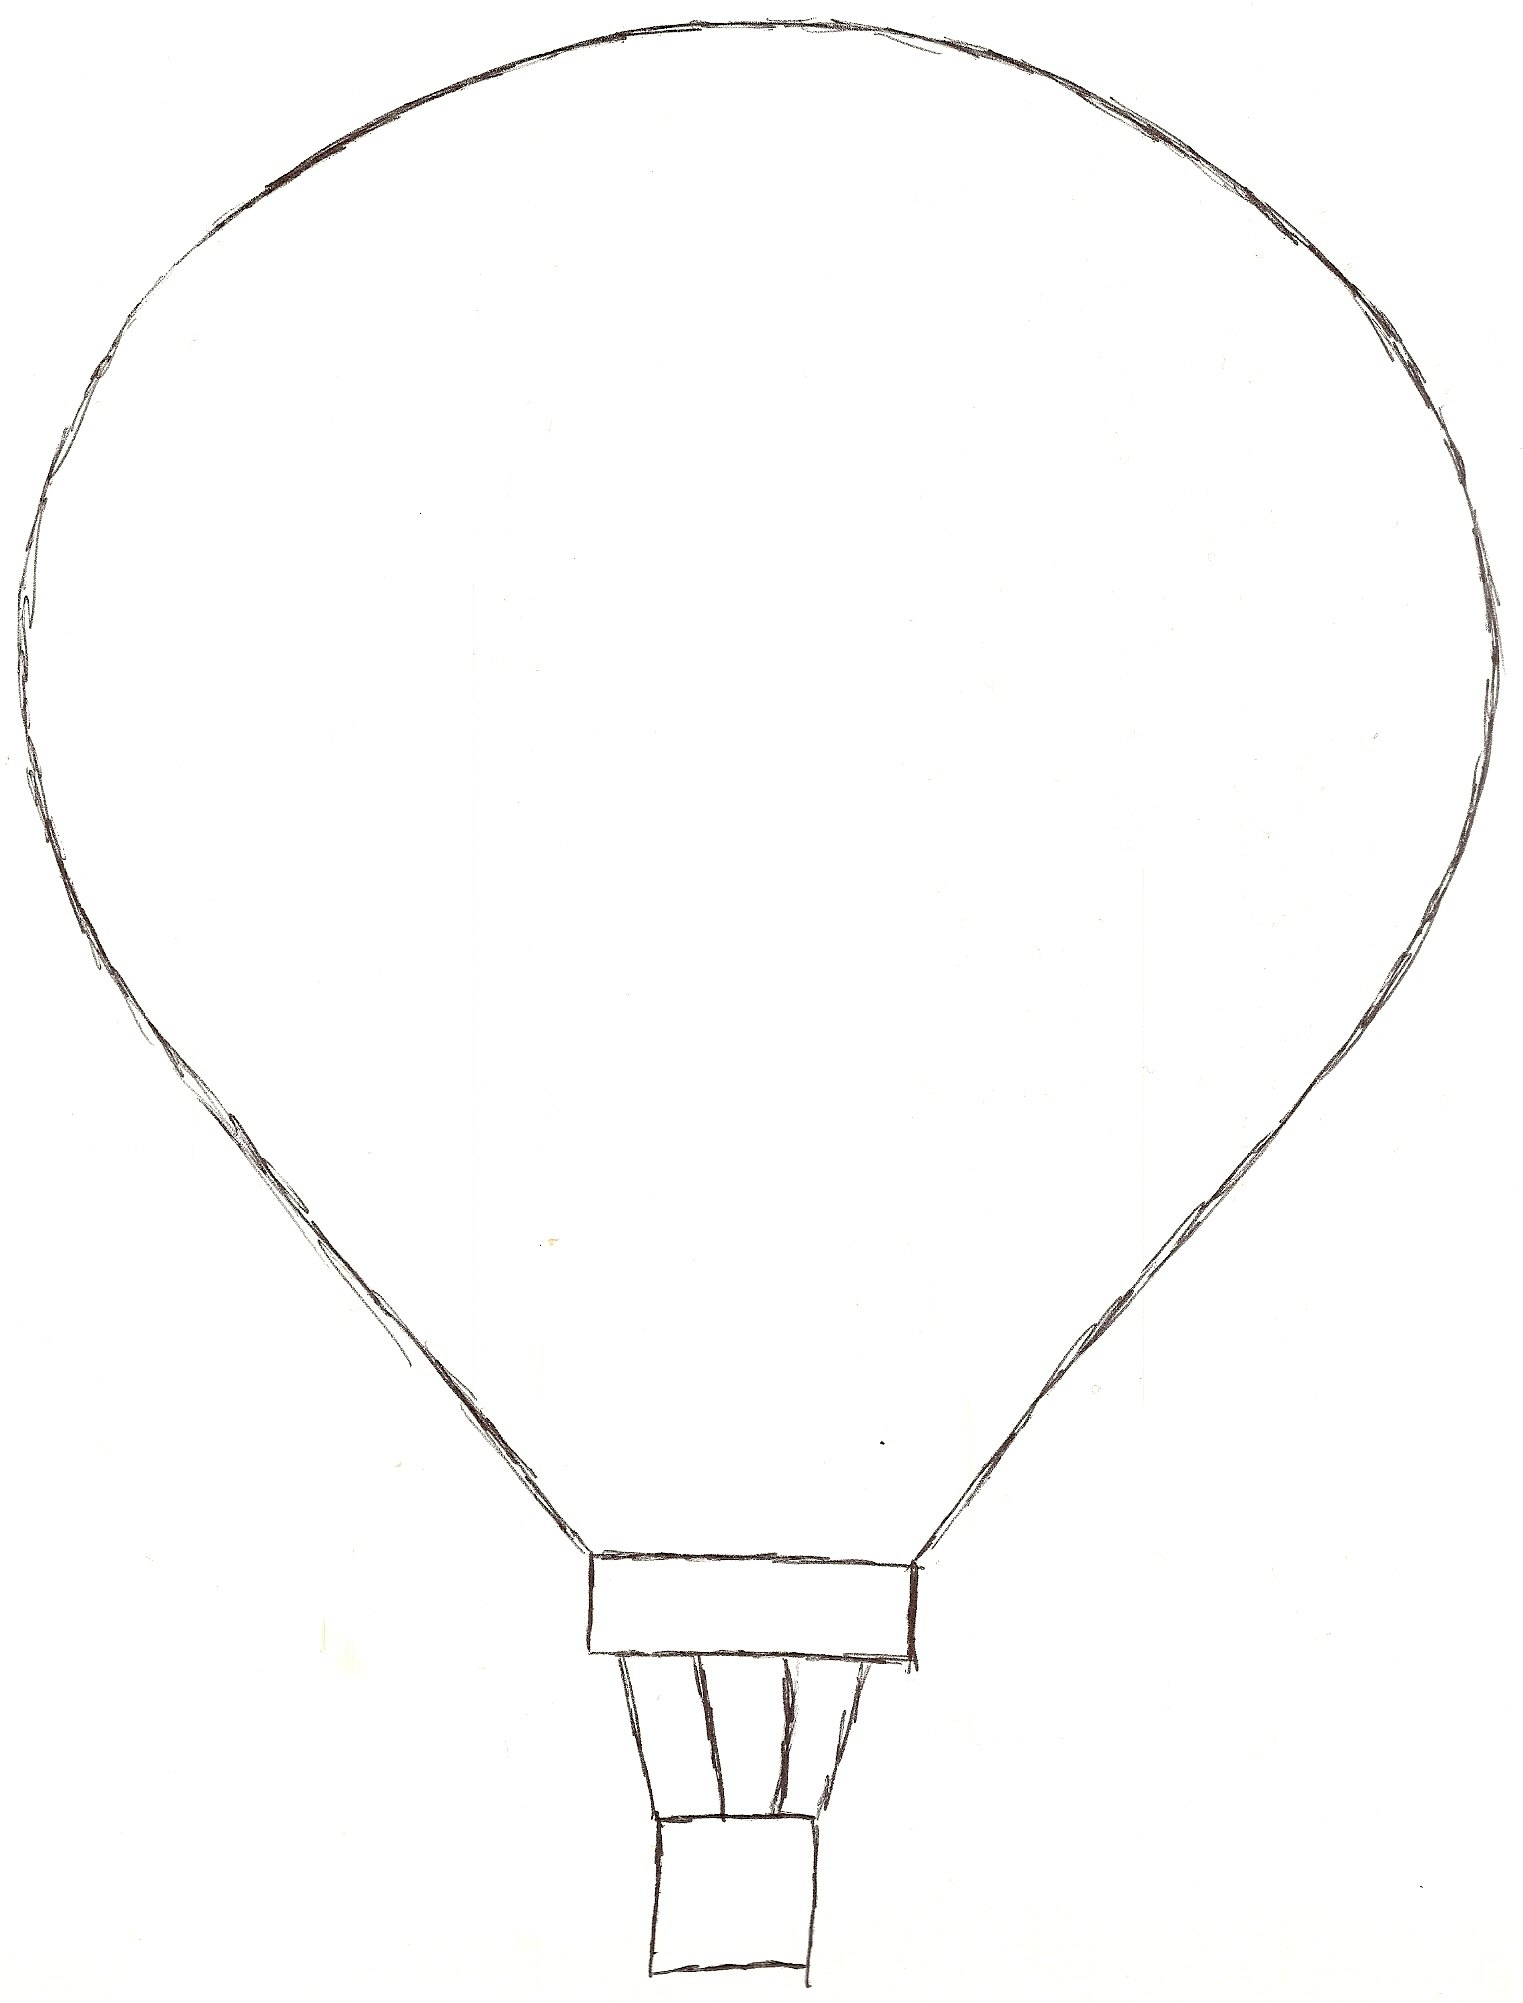 Hot Air Balloon Drawing Template | Free download best Hot ...